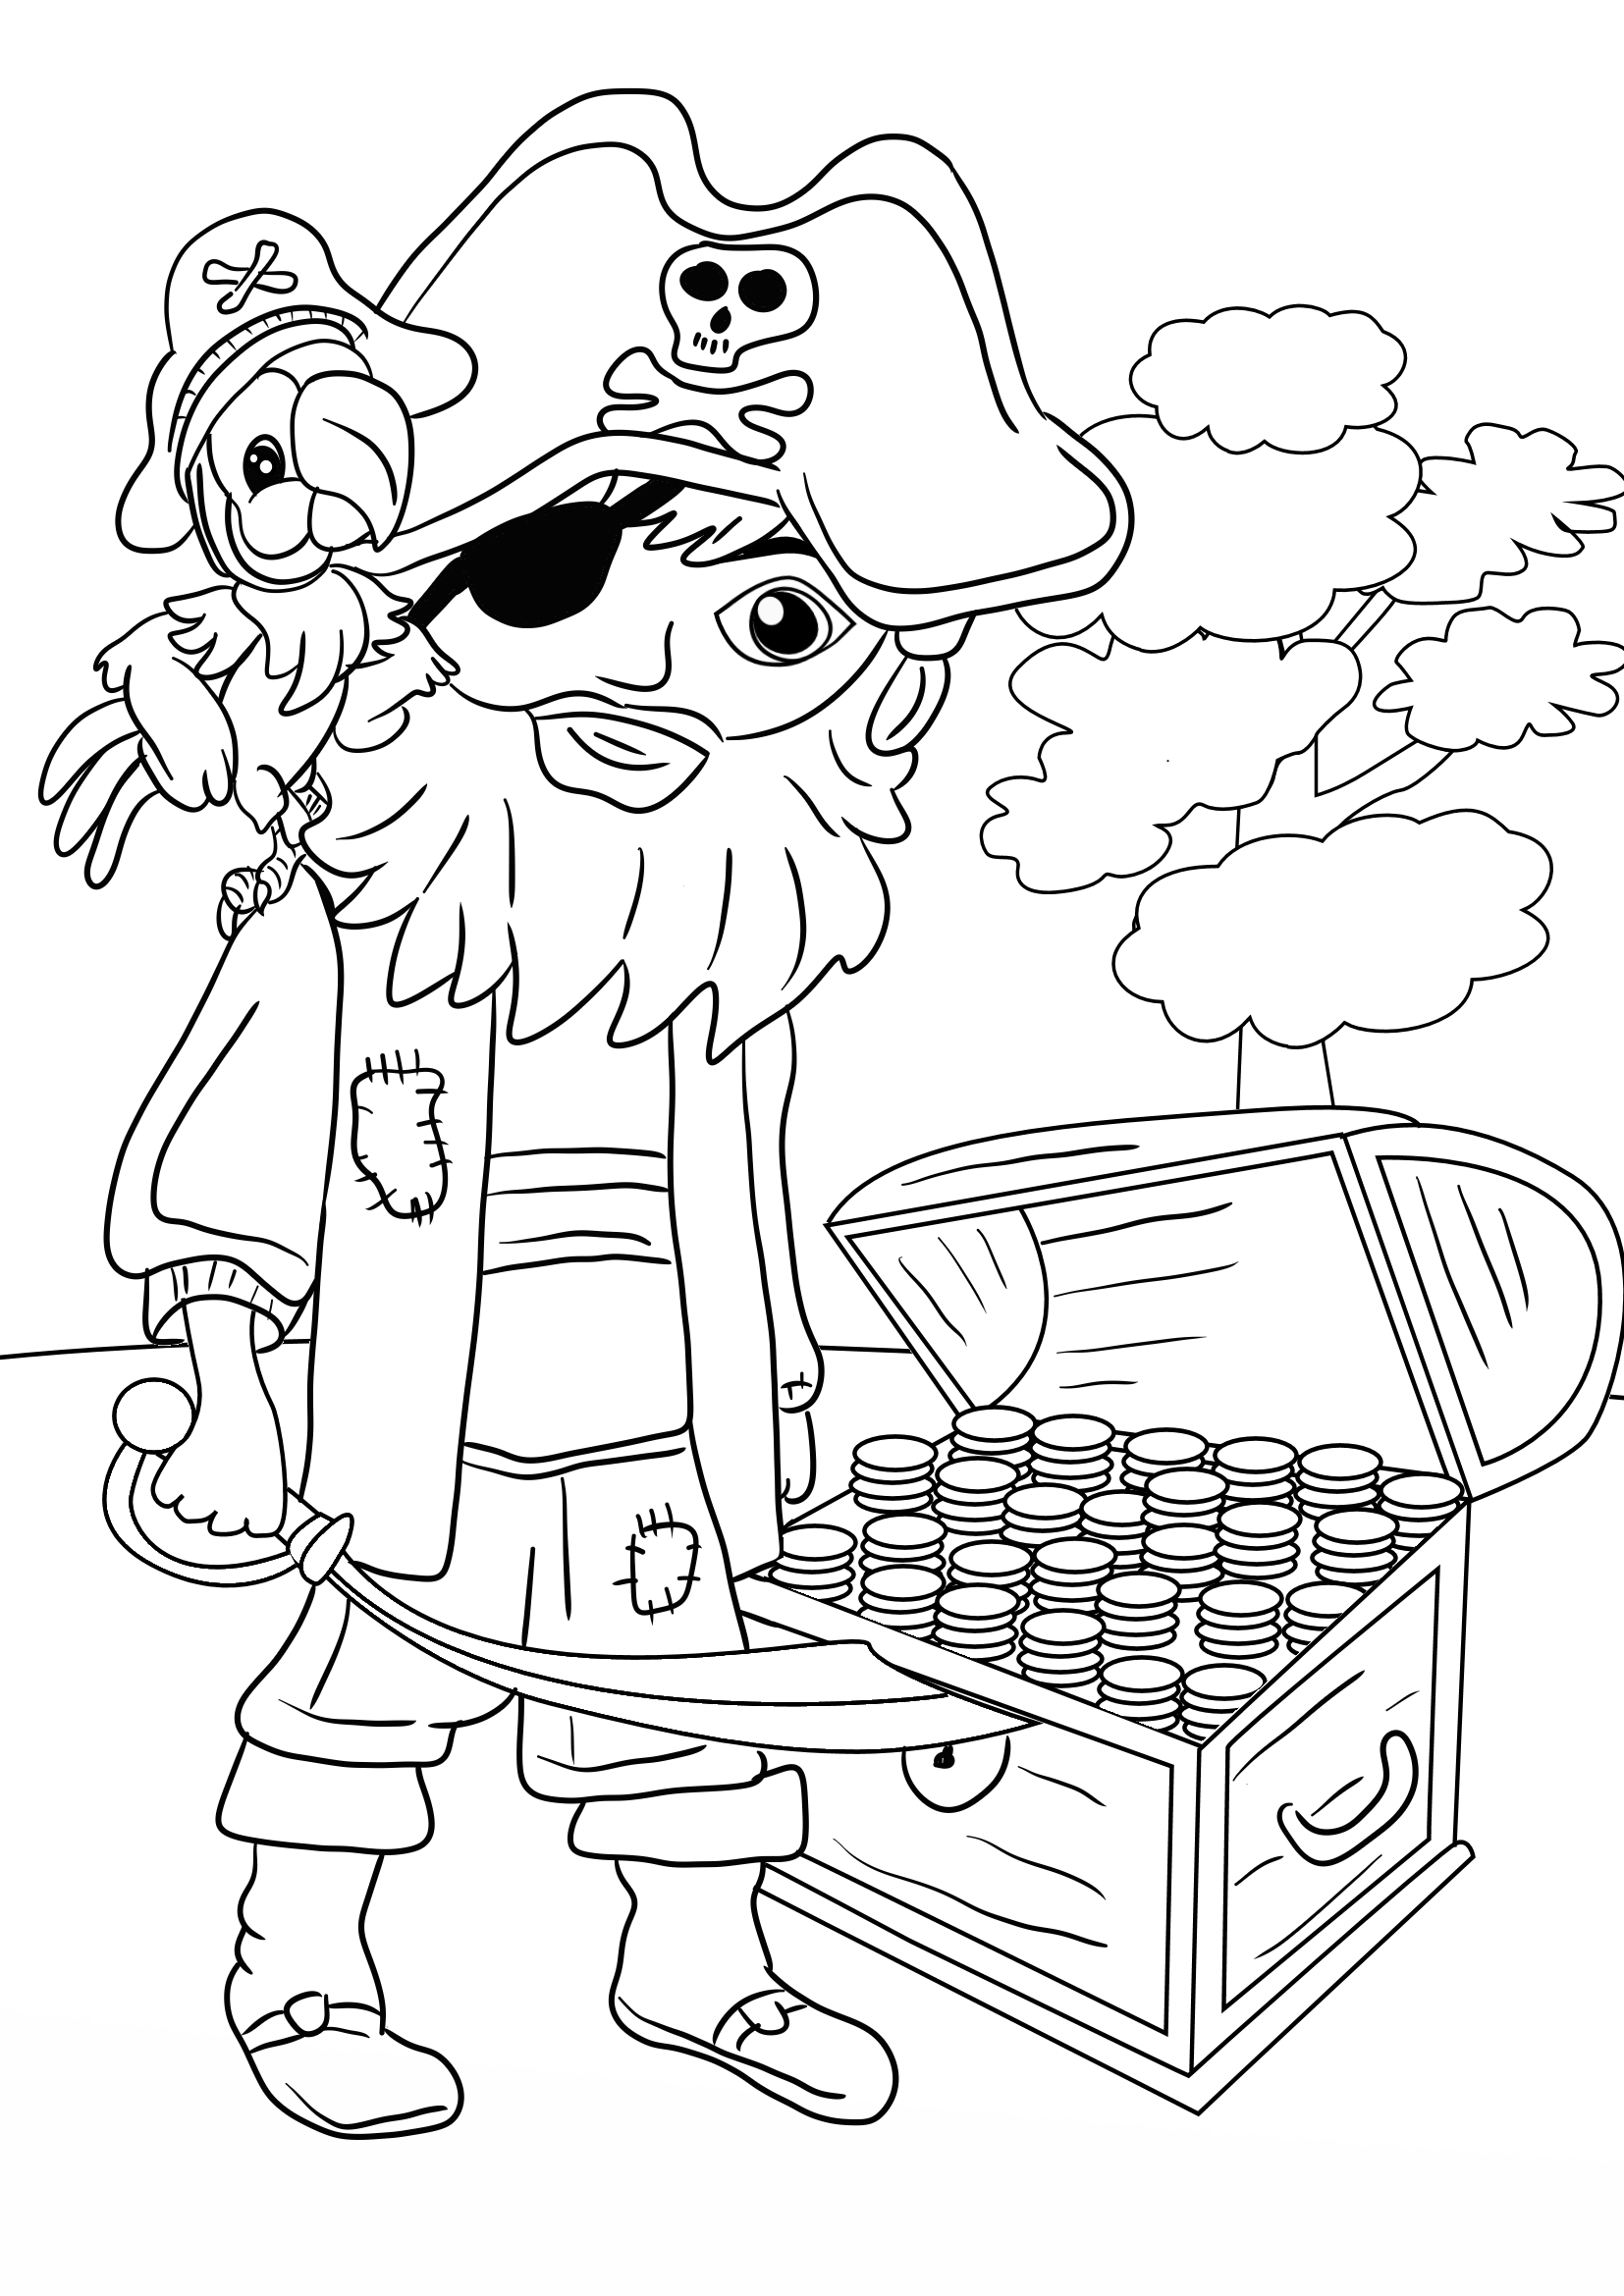 pirate coloring coloring page pirate in a battle coloring pirate